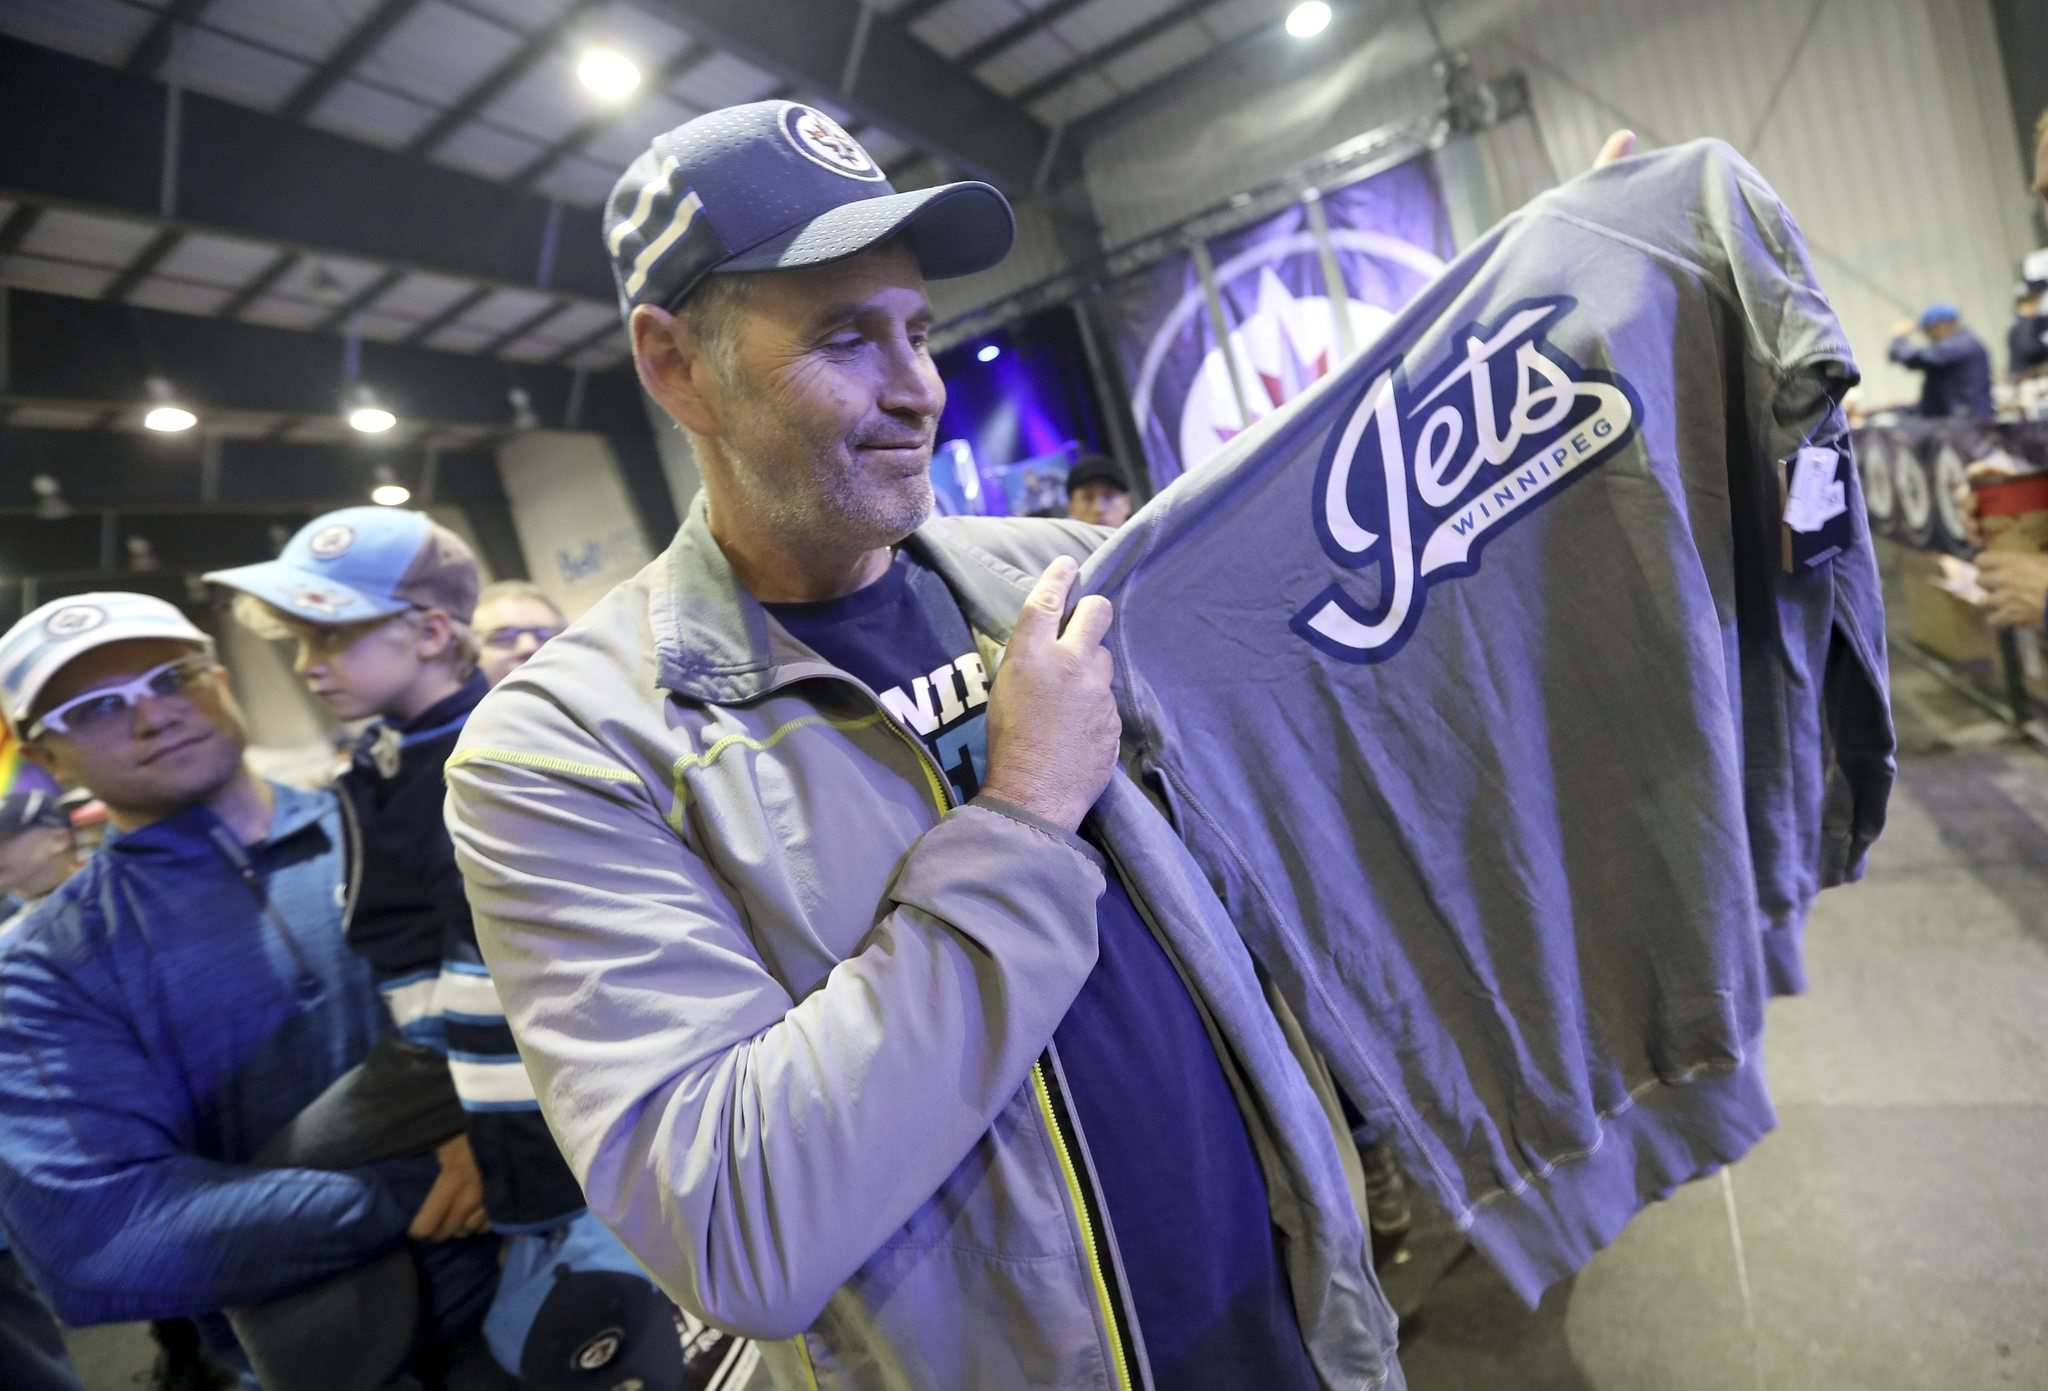 Shawn McCartney picks out some merchandise.